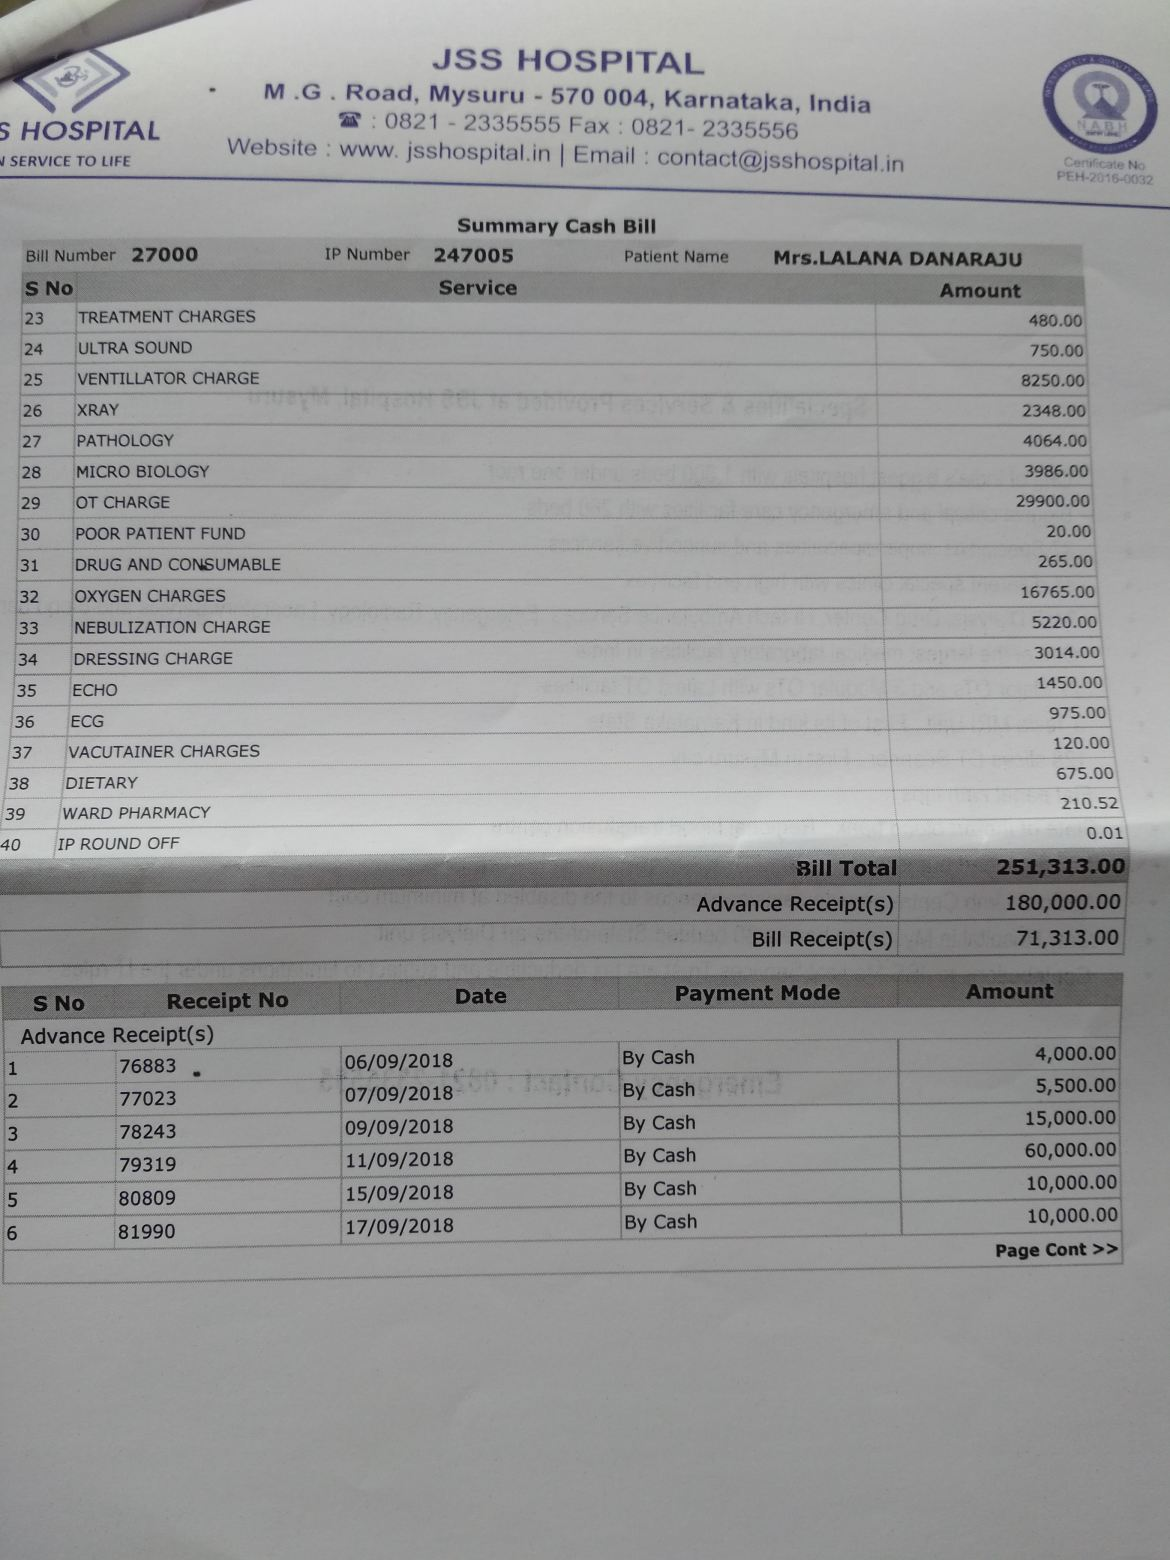 hospital bills of recent two operations that happened on 9th and 19th September which cost us Rupees 2,51,300.